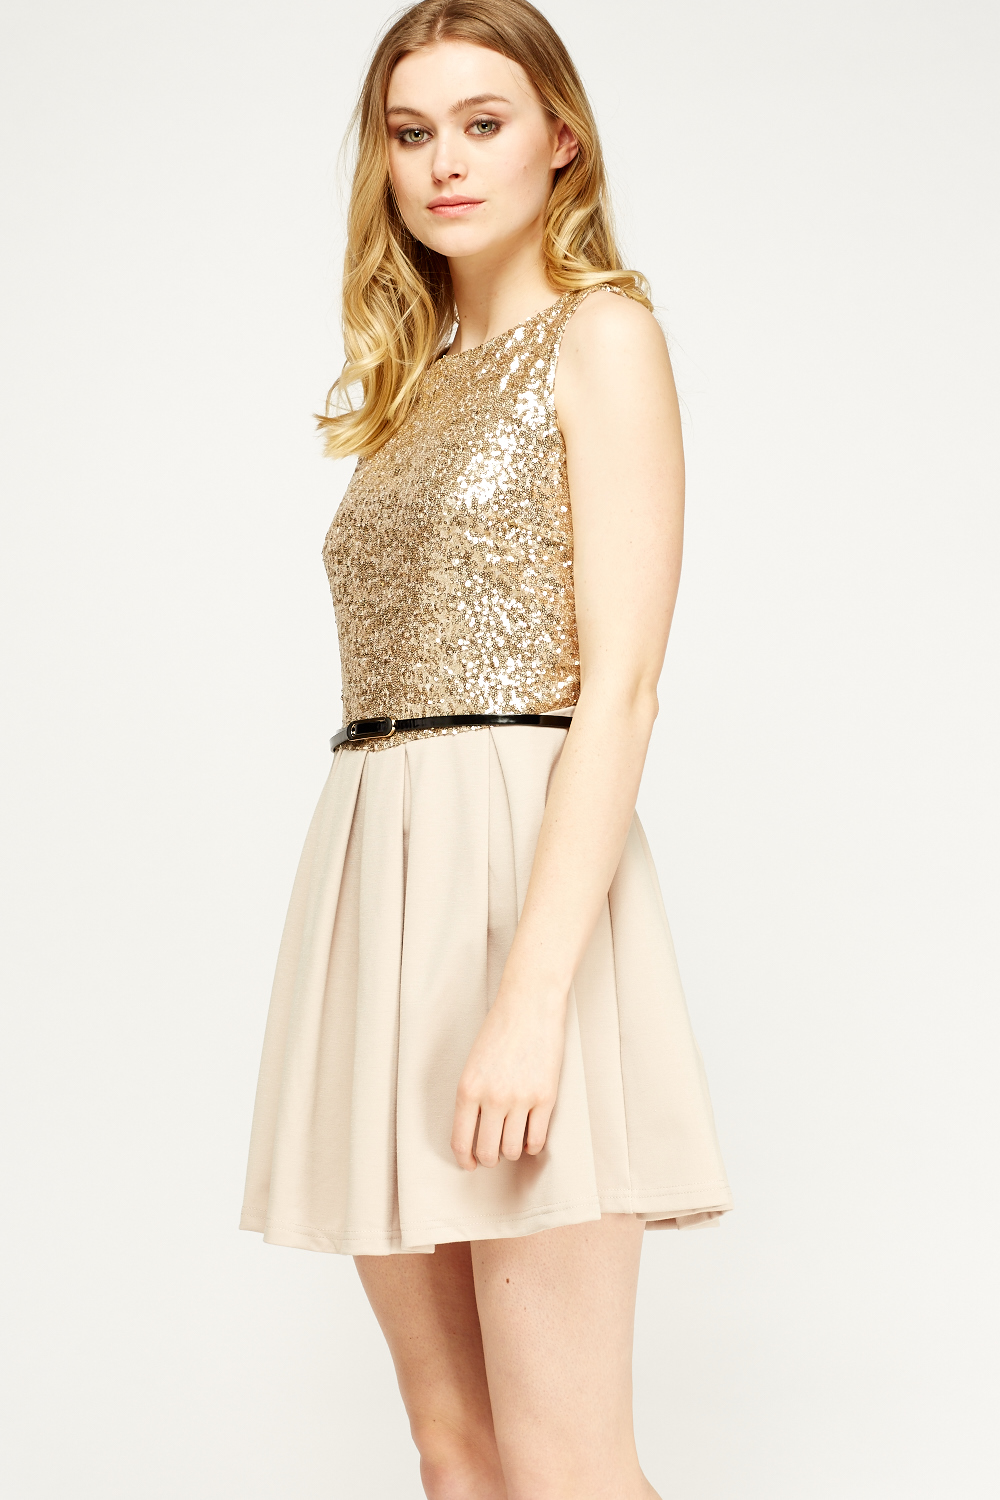 ad07d228 Sequin Bodice Skater Dress - Just £5